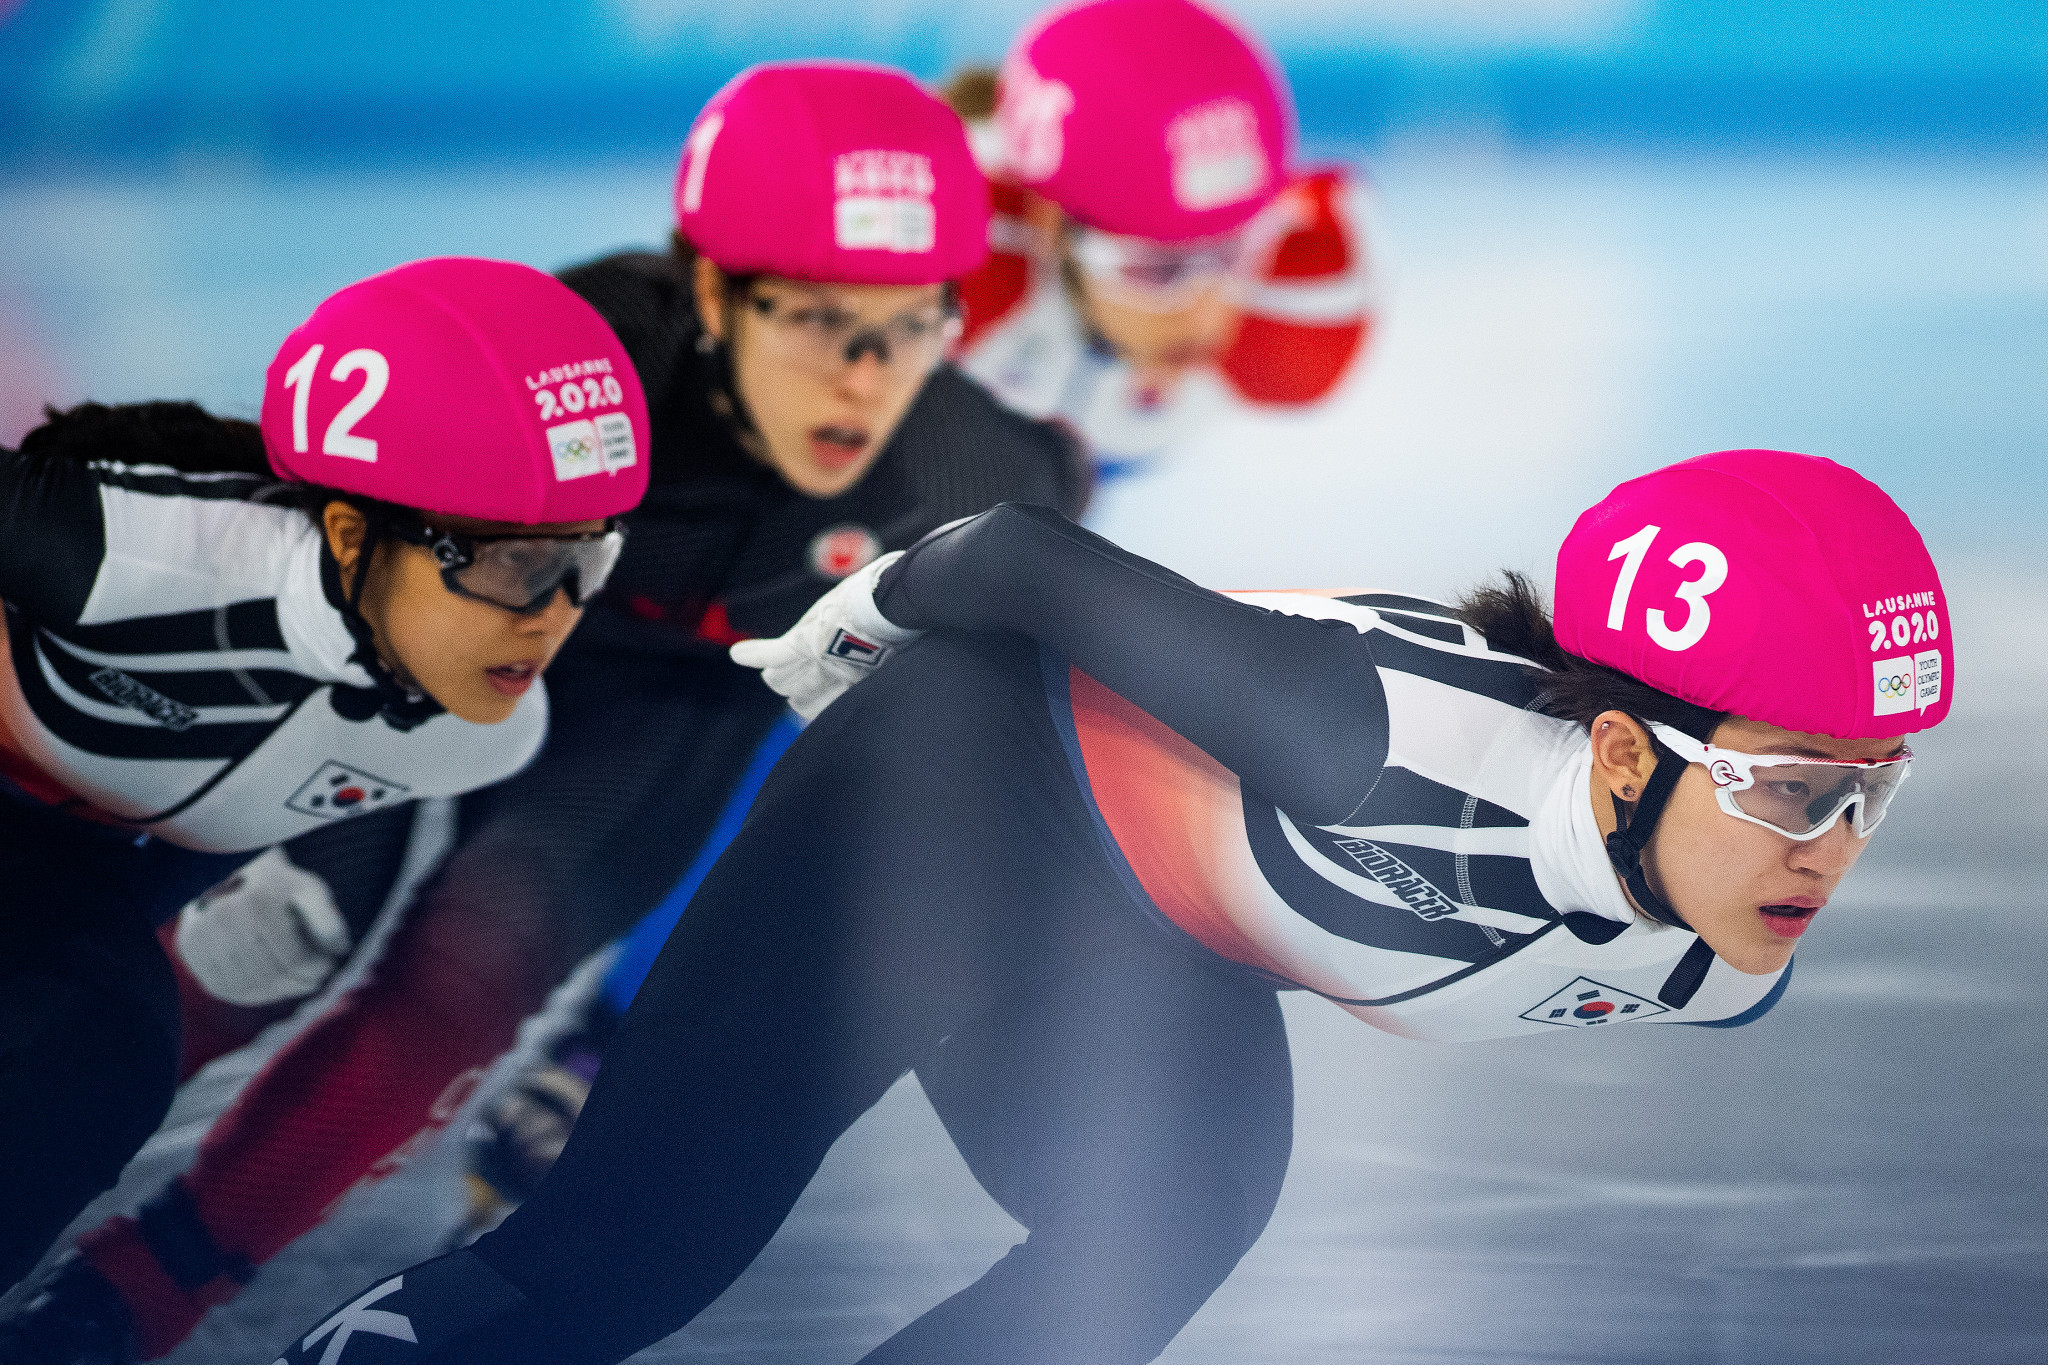 South Korea swept both short track titles on offer as the sport made an impressive entrance at Lausanne 2020 ©Getty Images